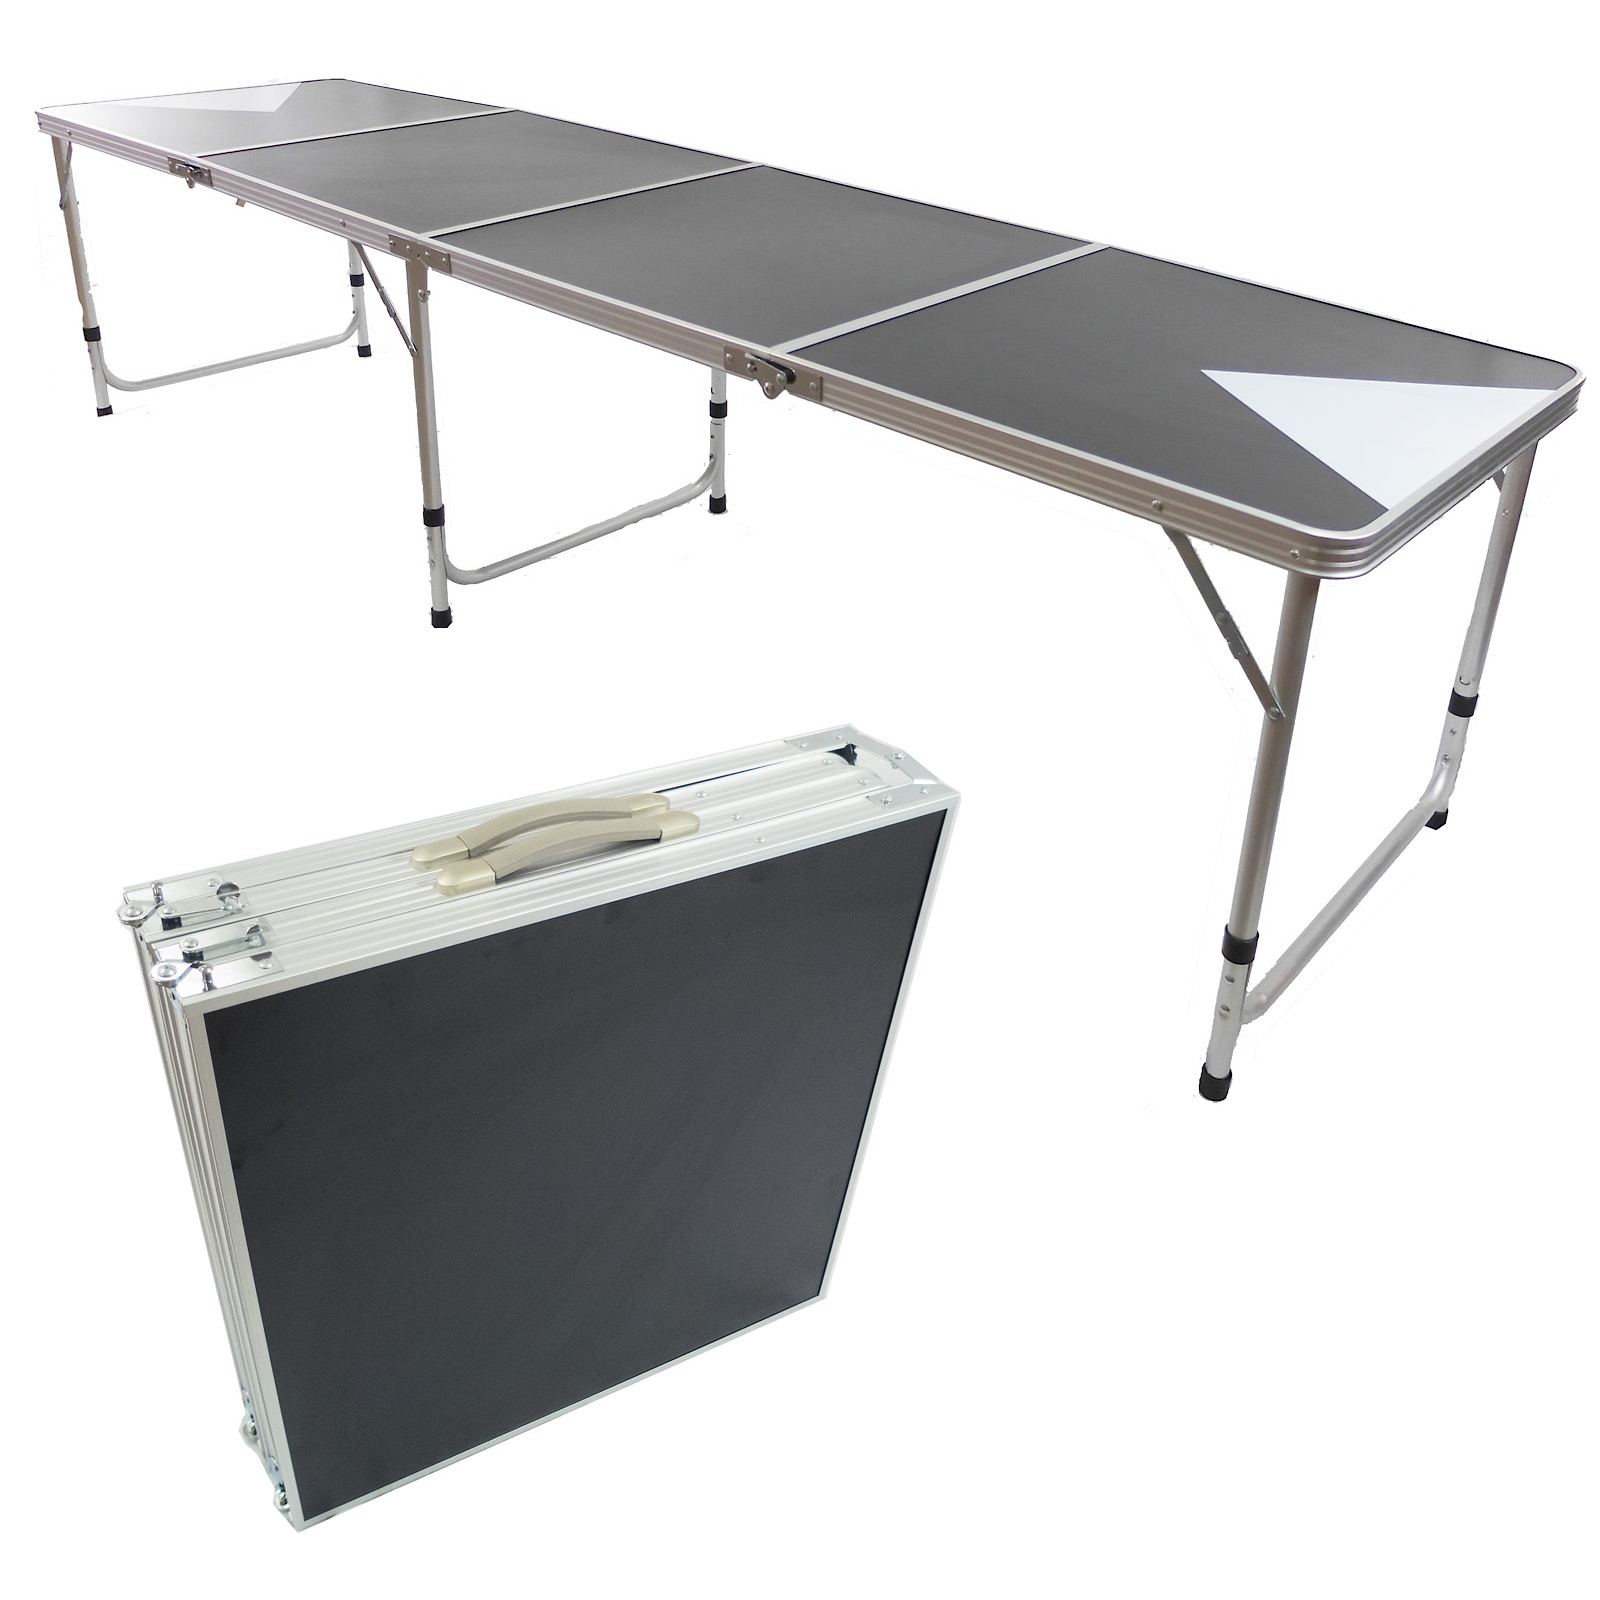 "Beer Pong Aluminum Folding Table W Handle 8"" BP 03 Easy Source Inc"